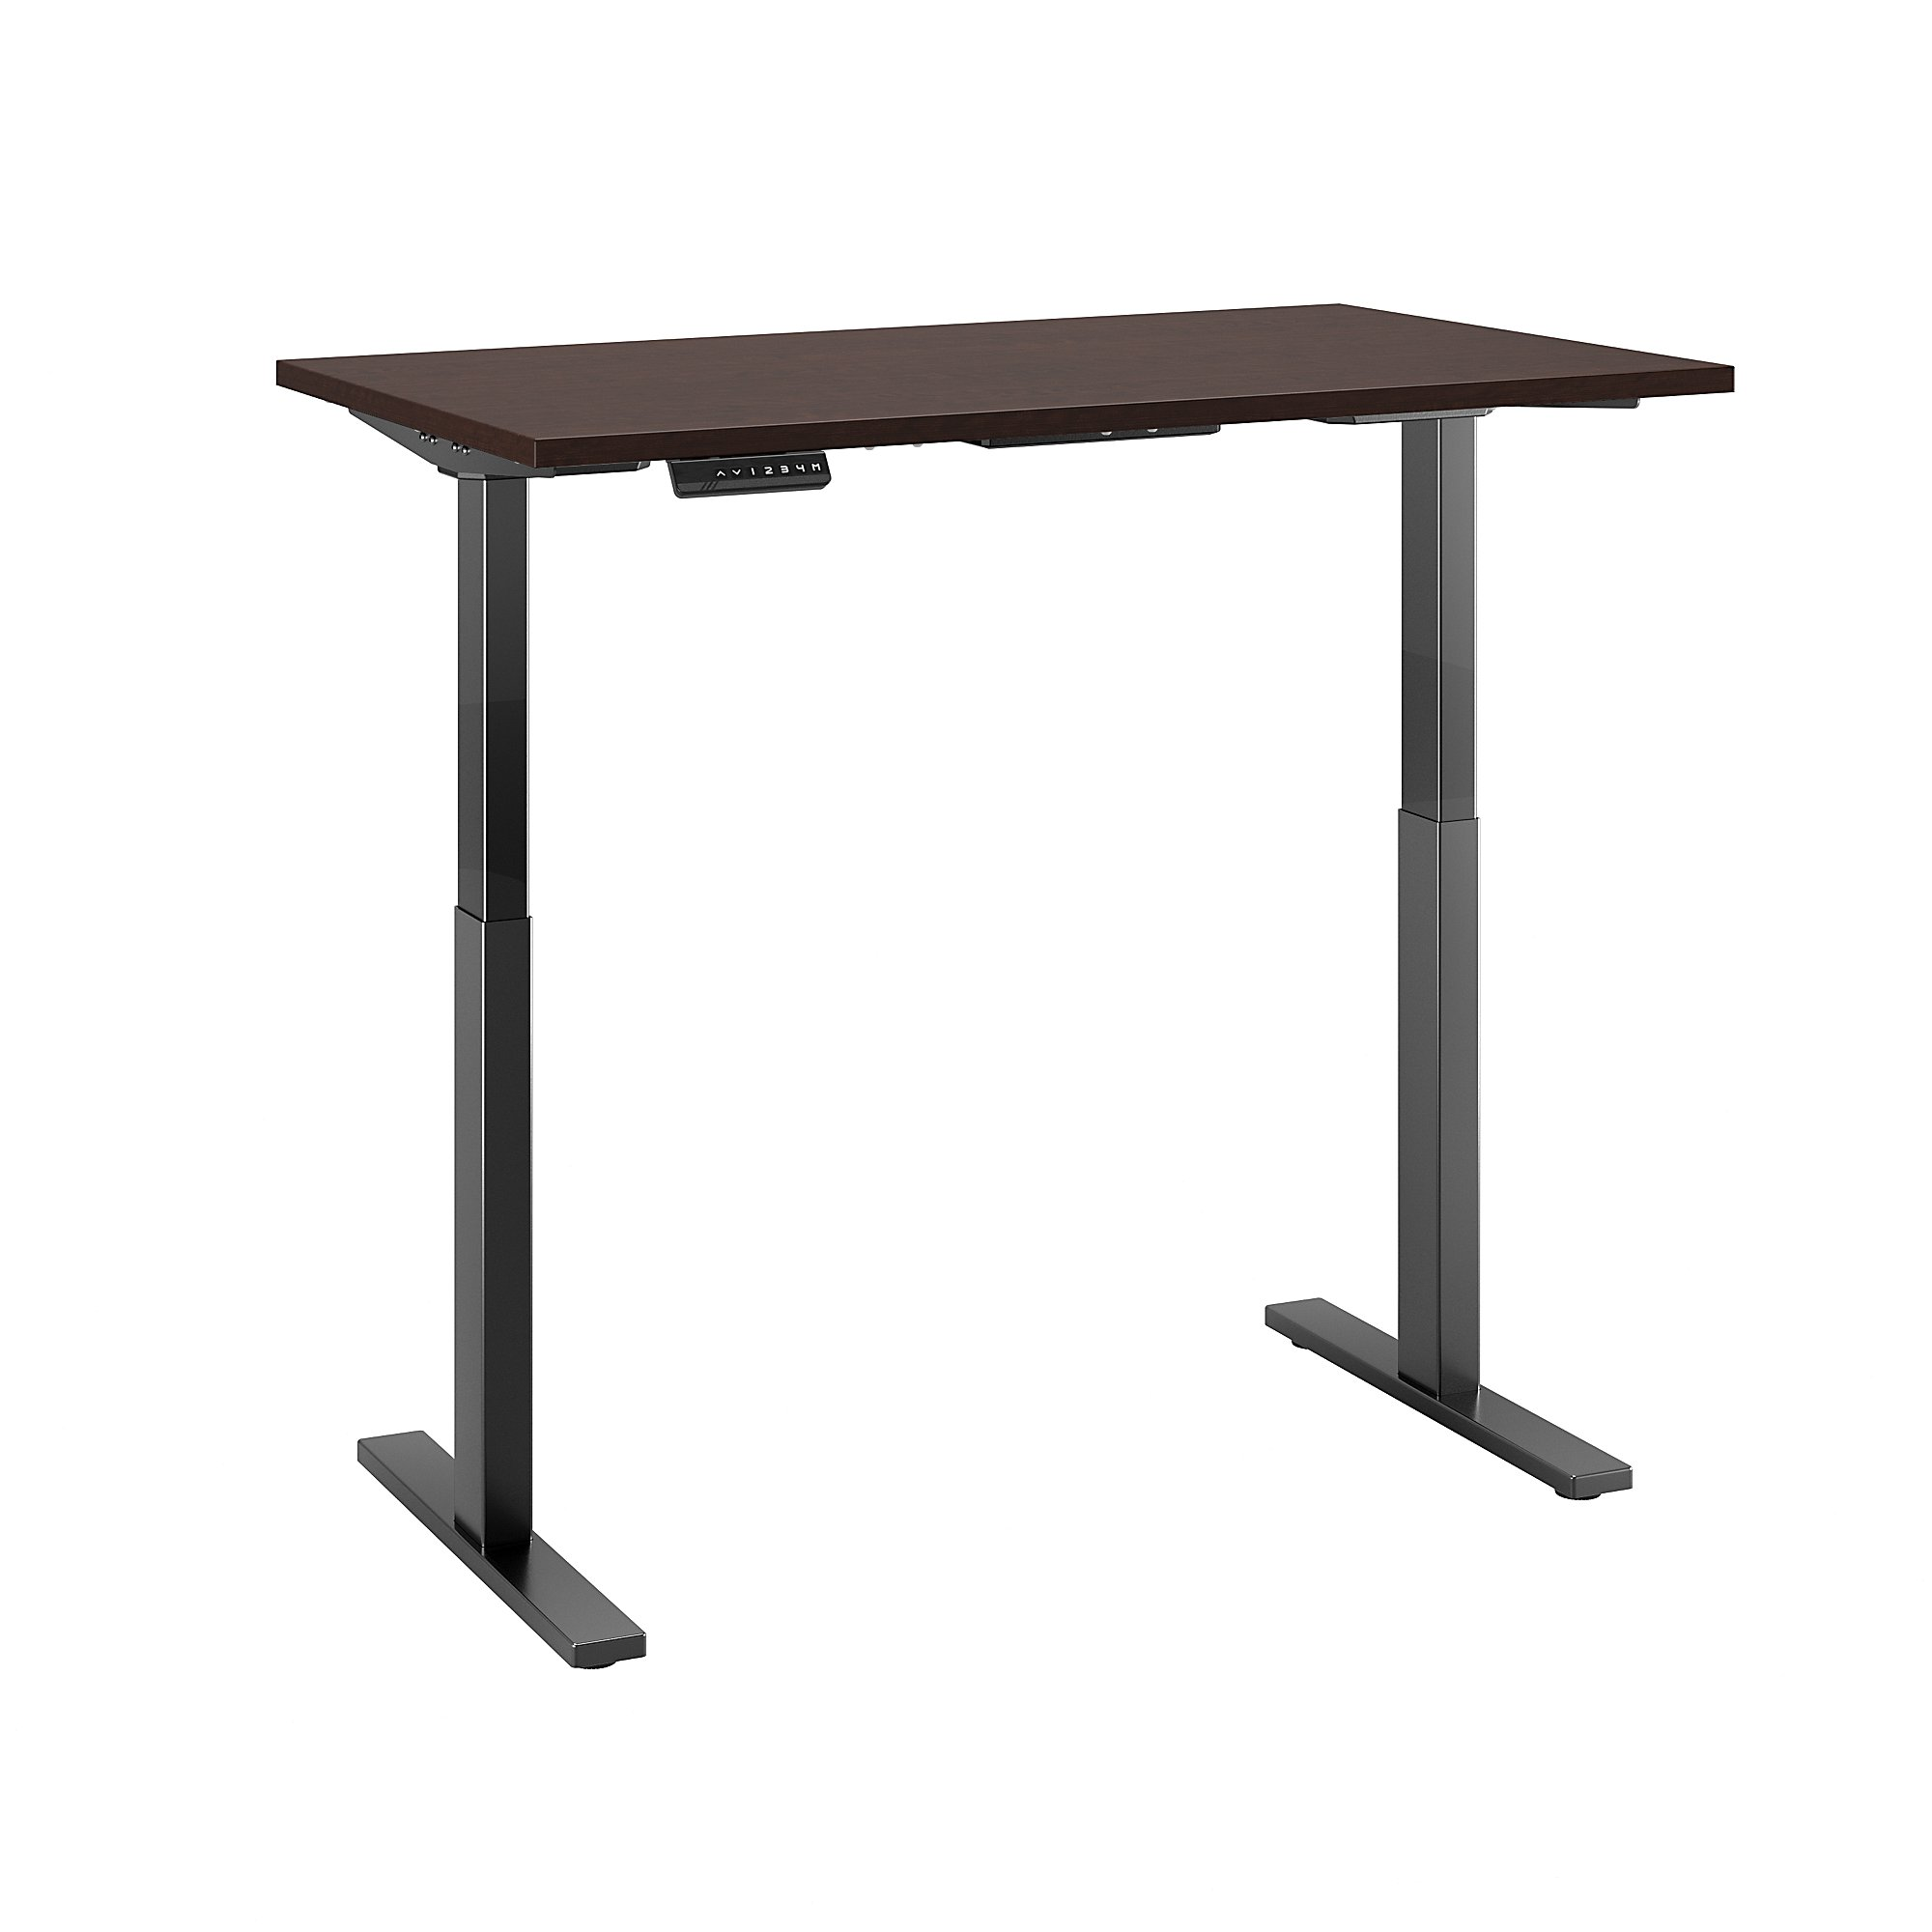 Sit stand desk adjustable CUB M6S4830MRSBK FBB